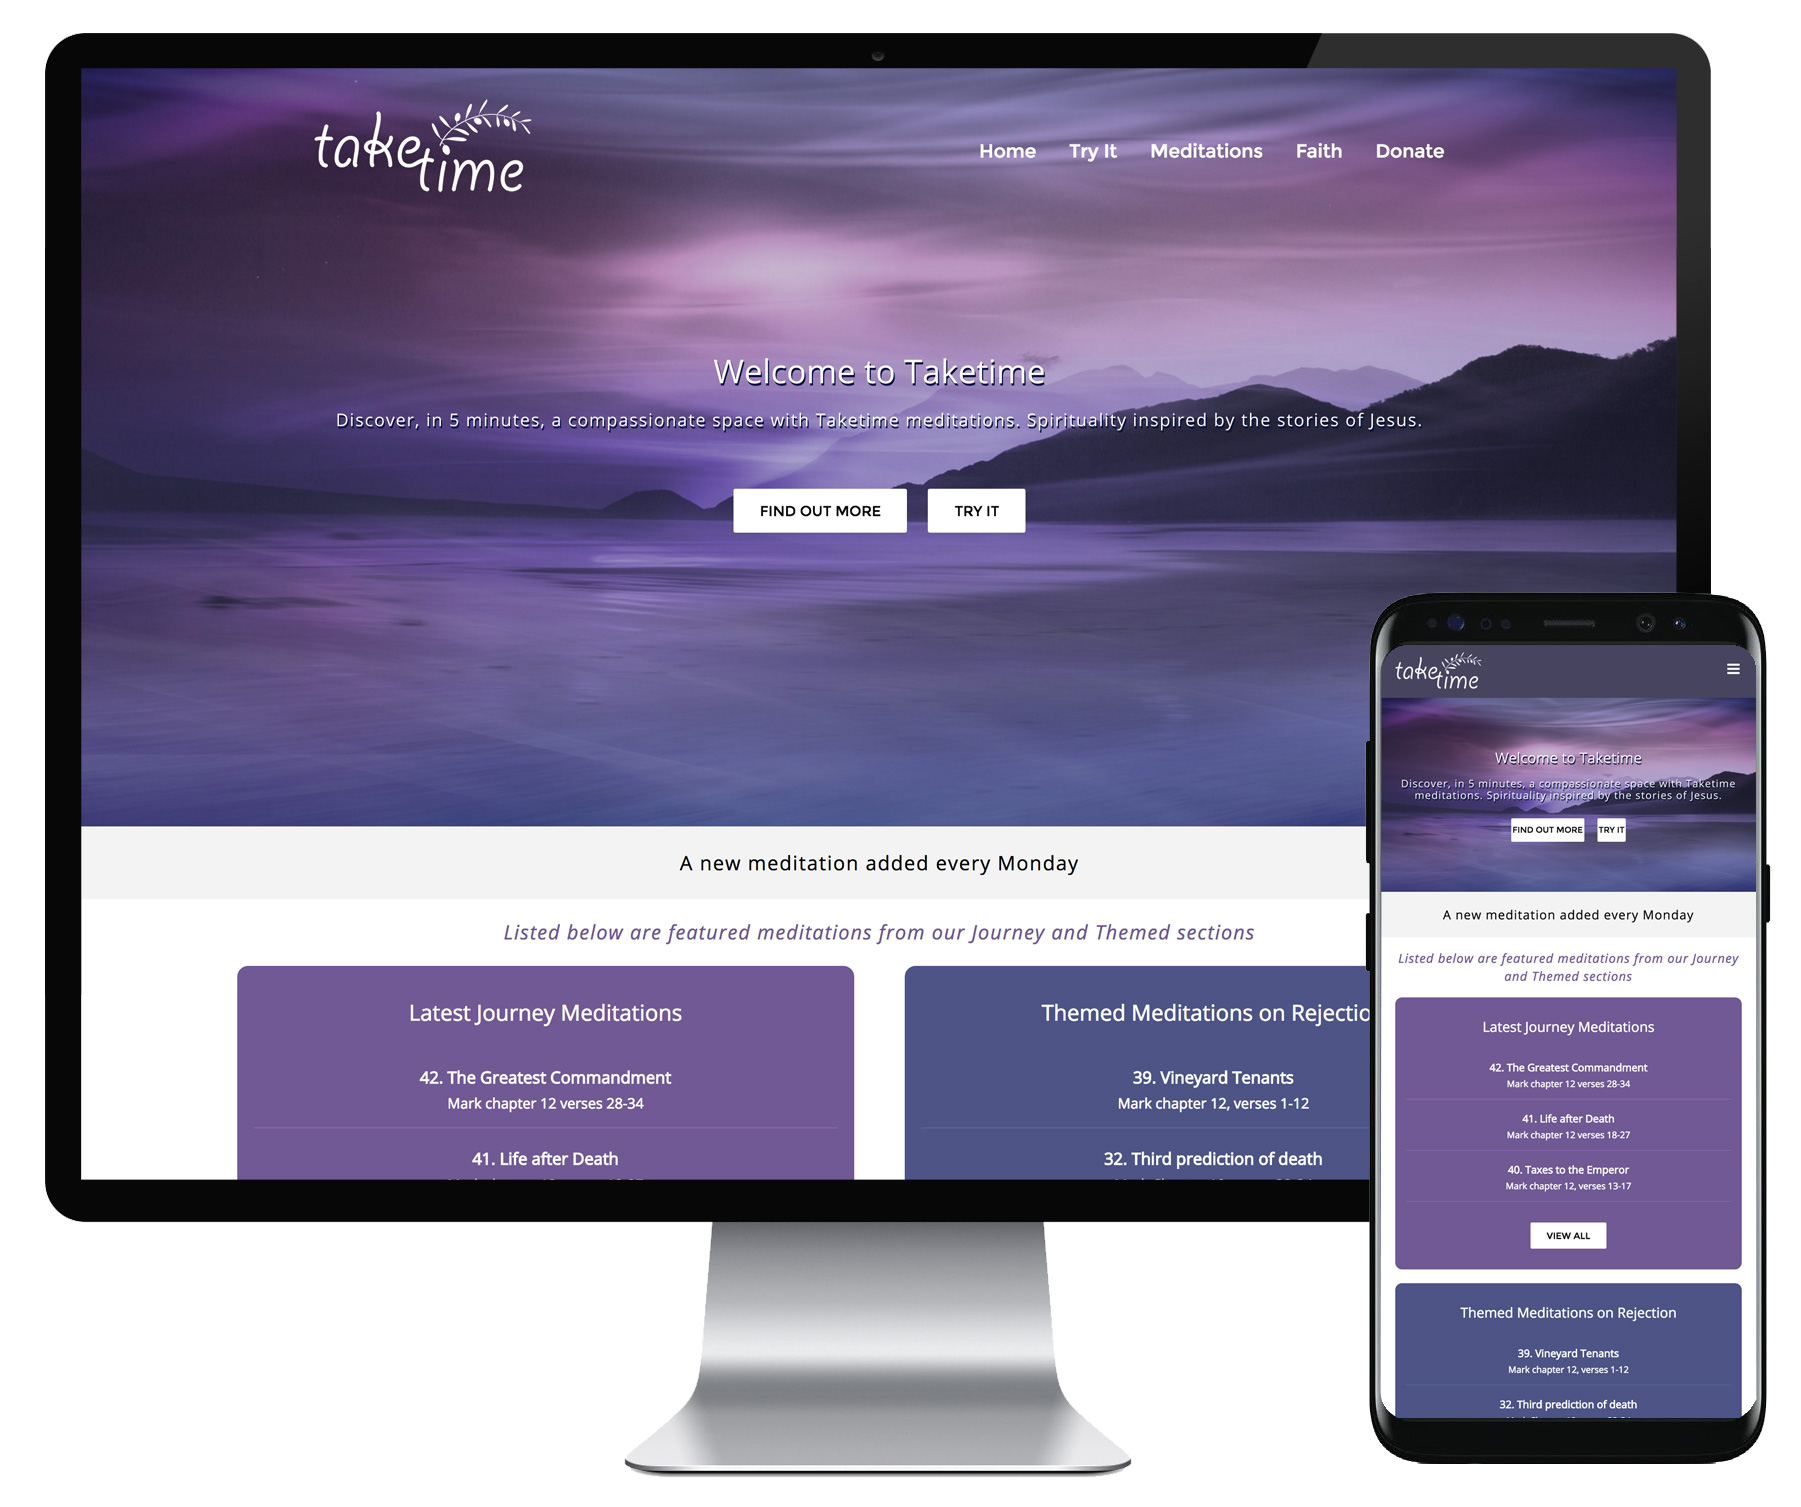 TakeTime website